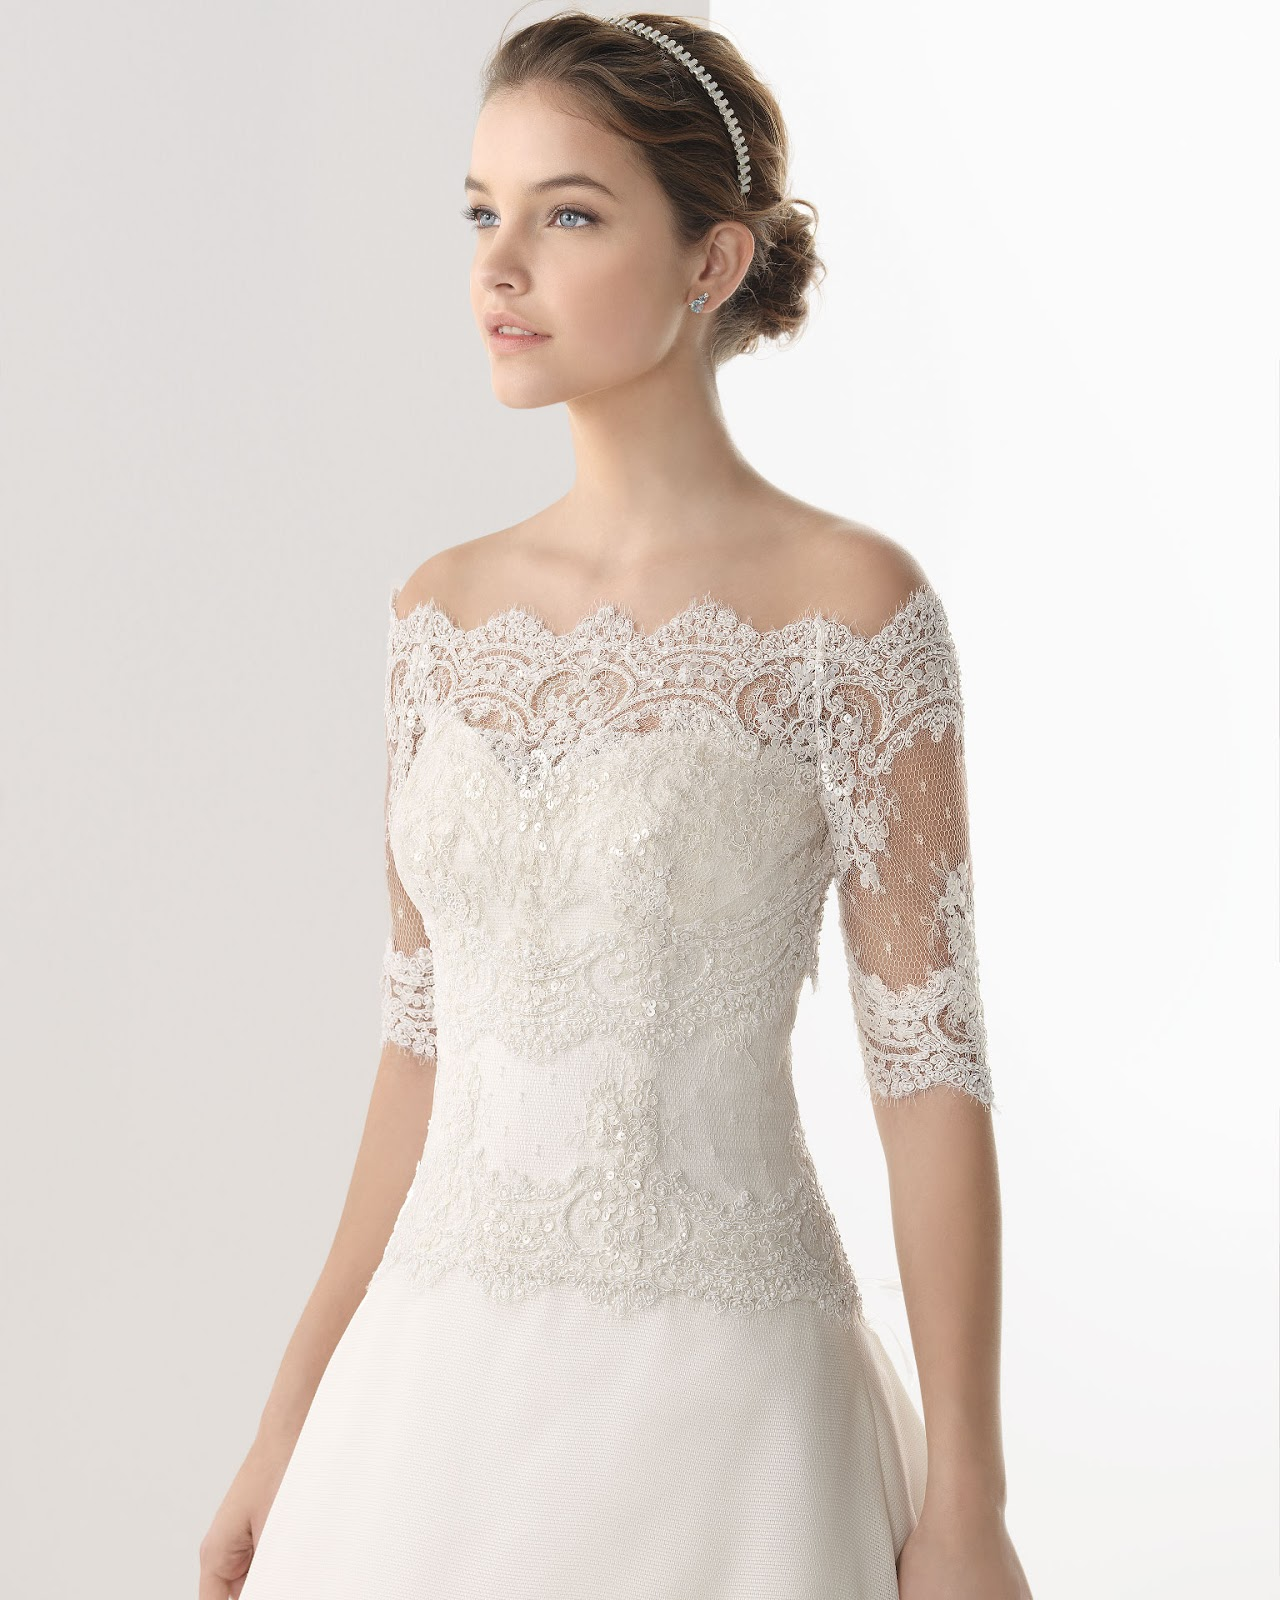 Bridal Gowns and Gown Wedding Dresses